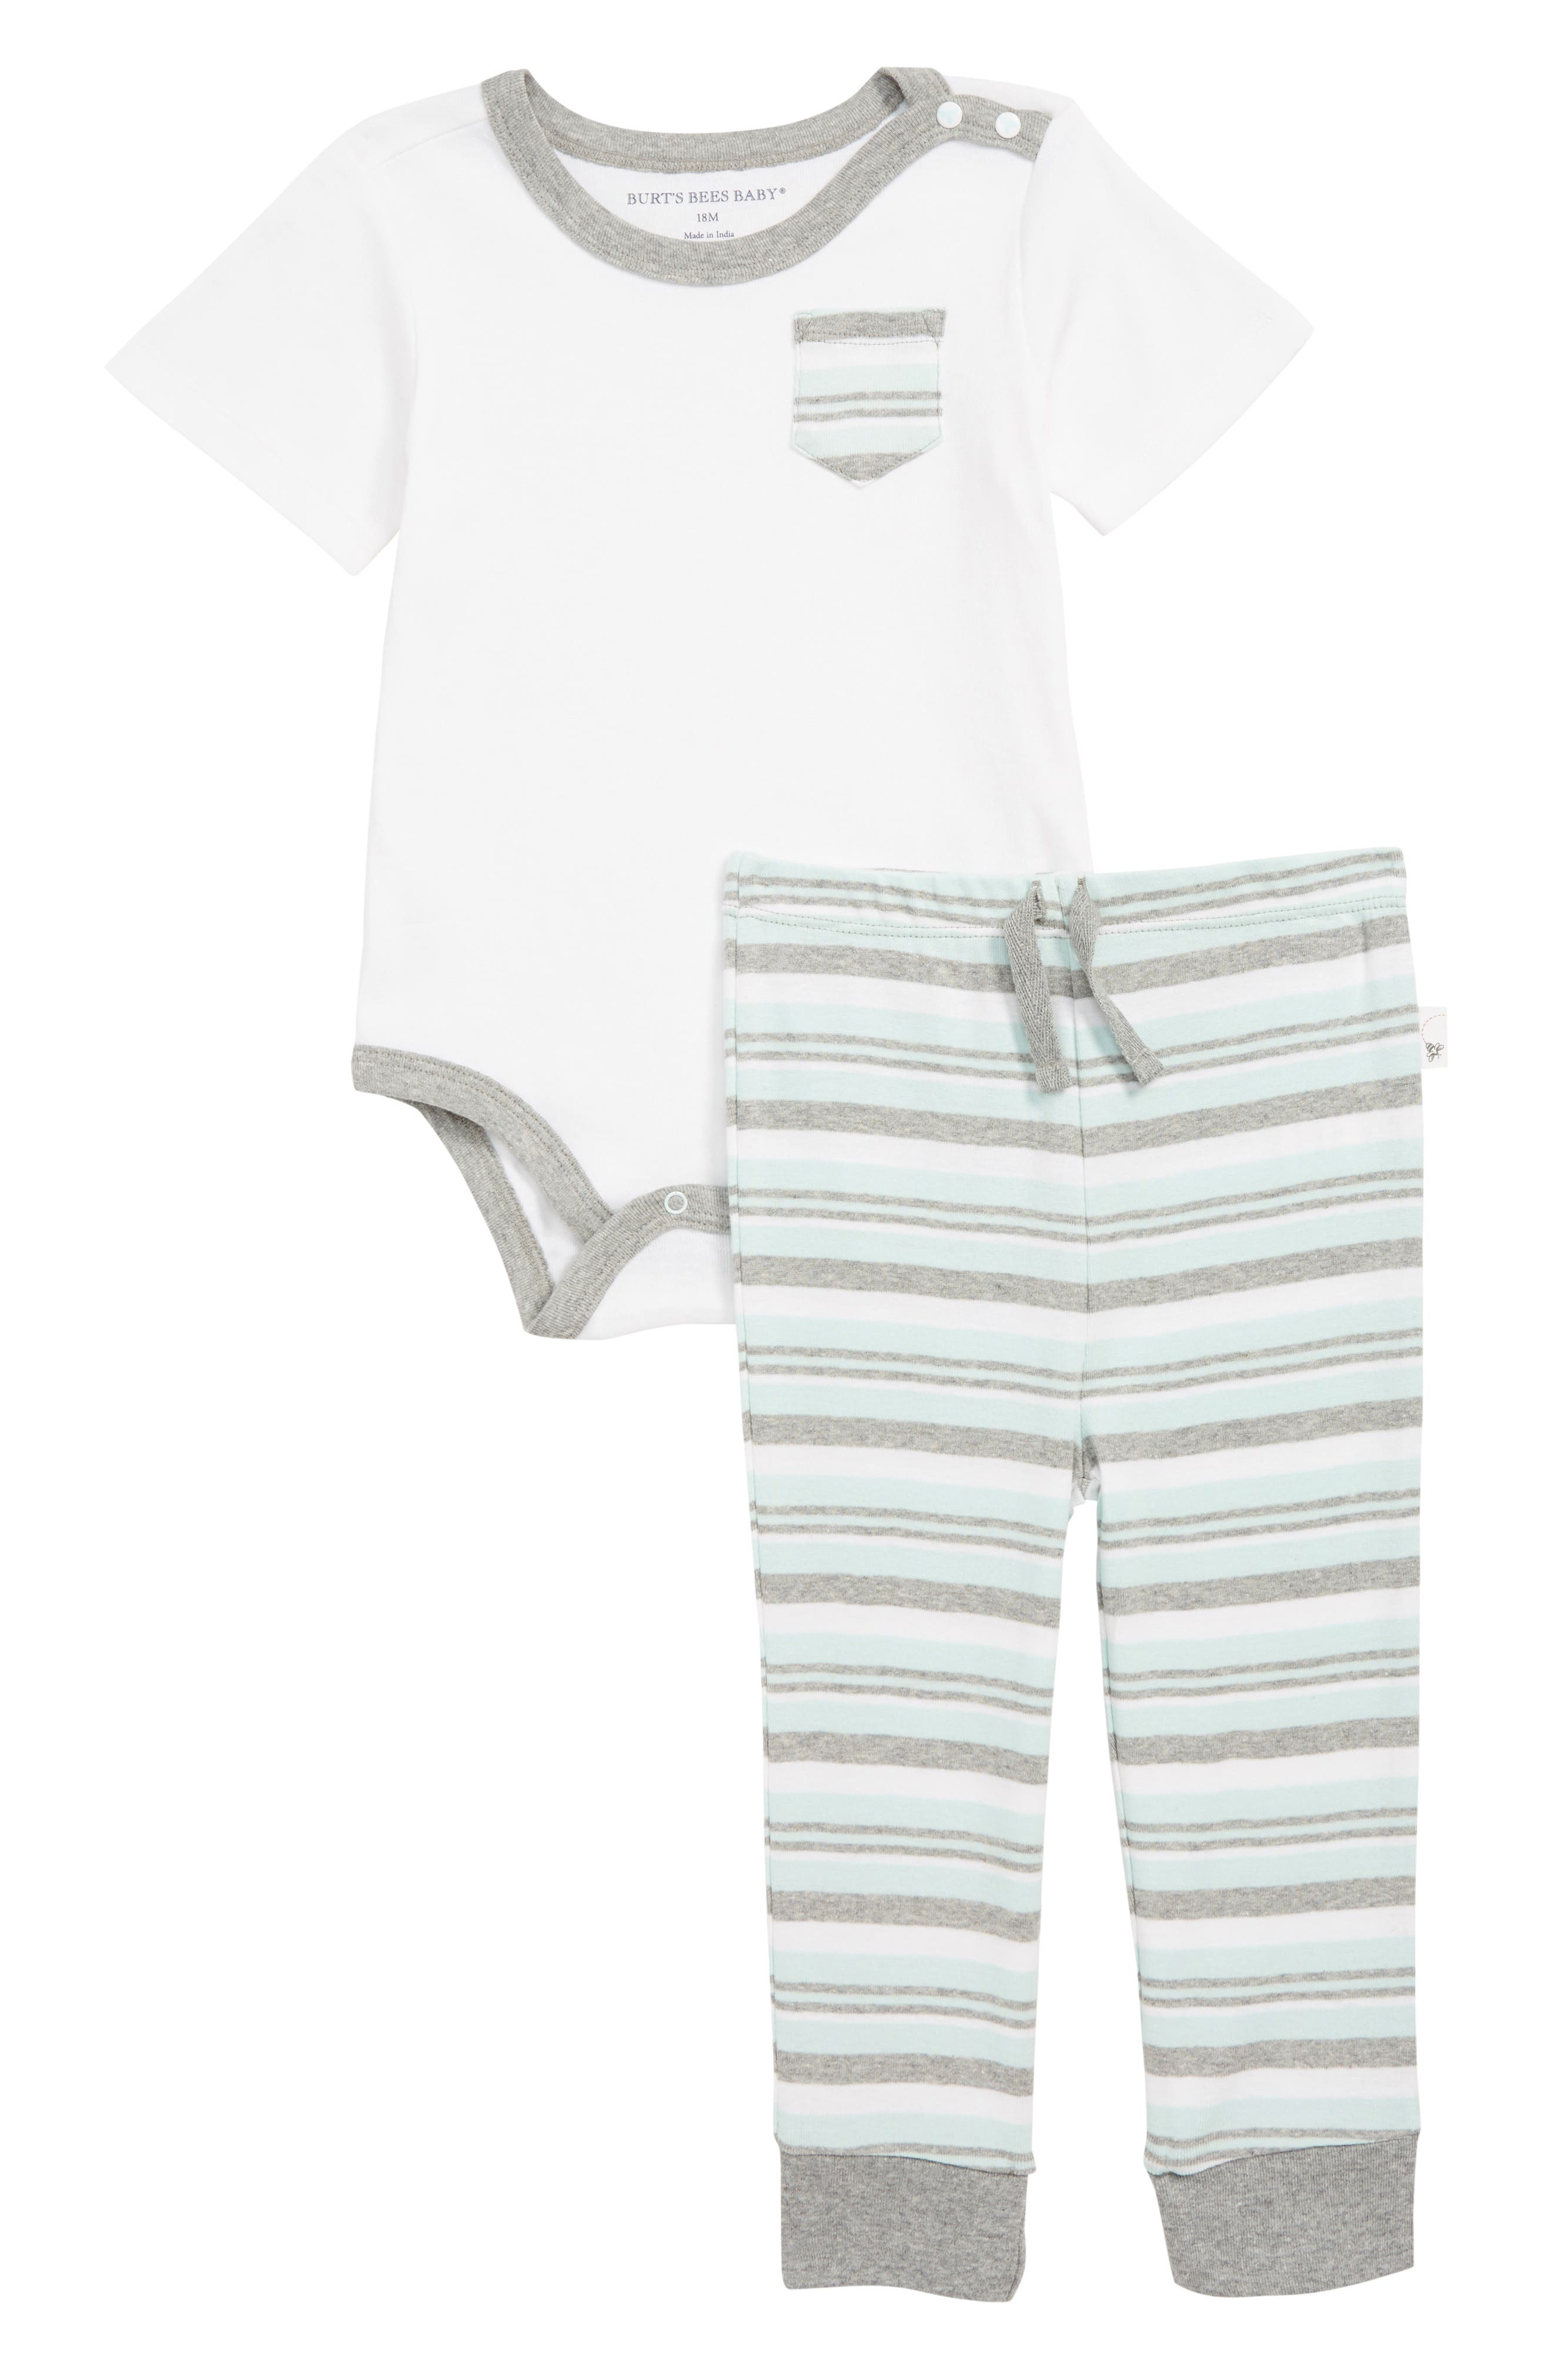 Infant Boys BurtS Bees Baby Organic Cotton Pocket Bodysuit  Pants Set